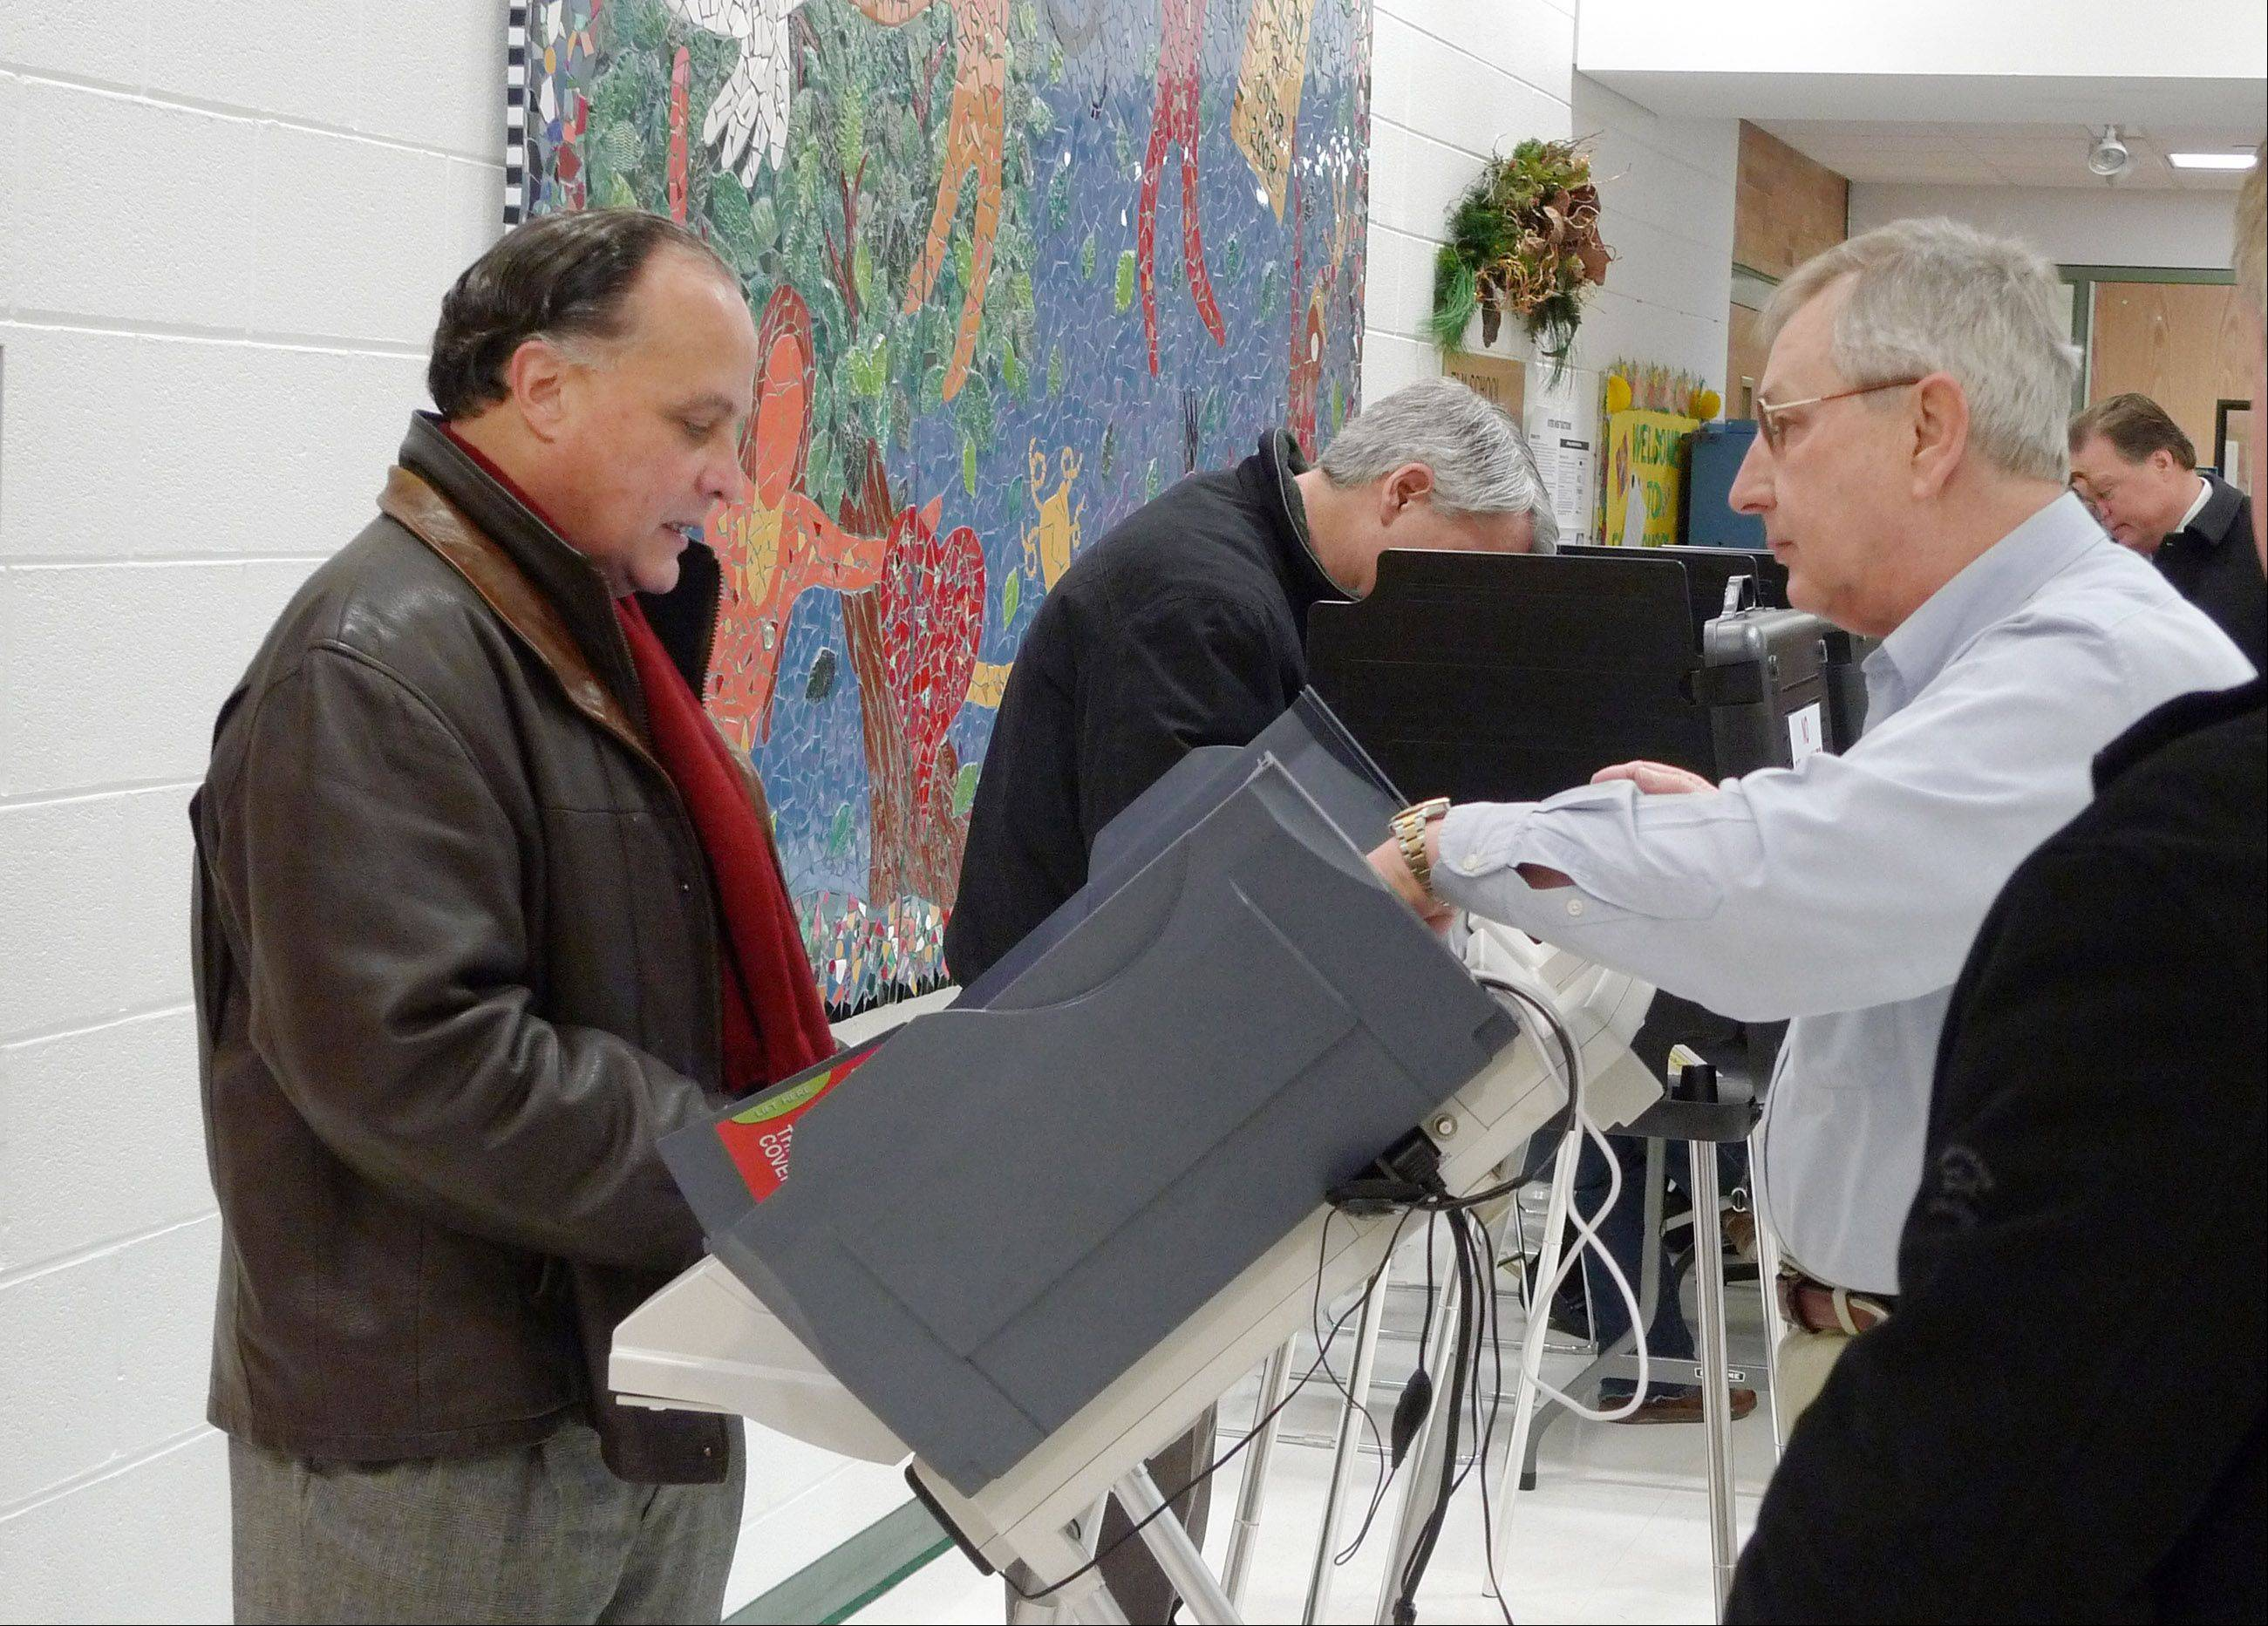 Gary Grasso, left, gets instructions on the workings of the polling place�s single electronic voting machine from election judge John Michalski, right. during the 2010 election.